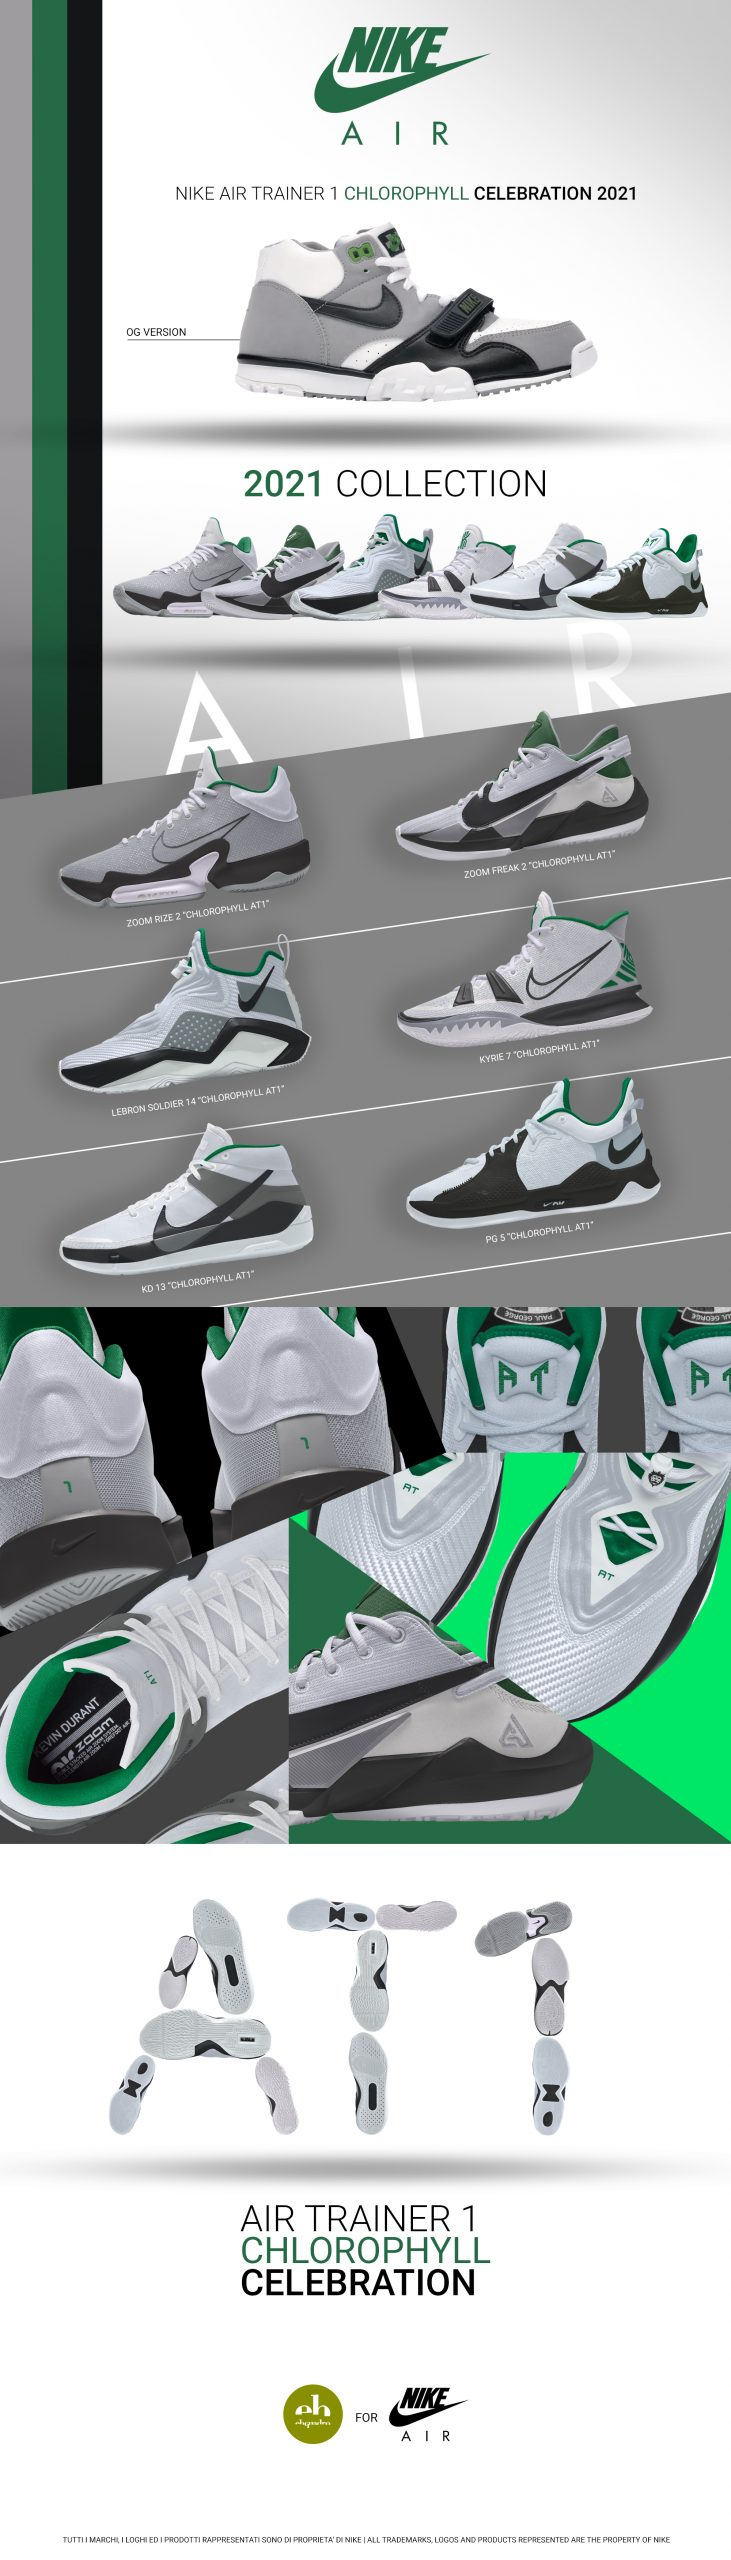 Air Trainer 1 Chlorophyll Collection Nike